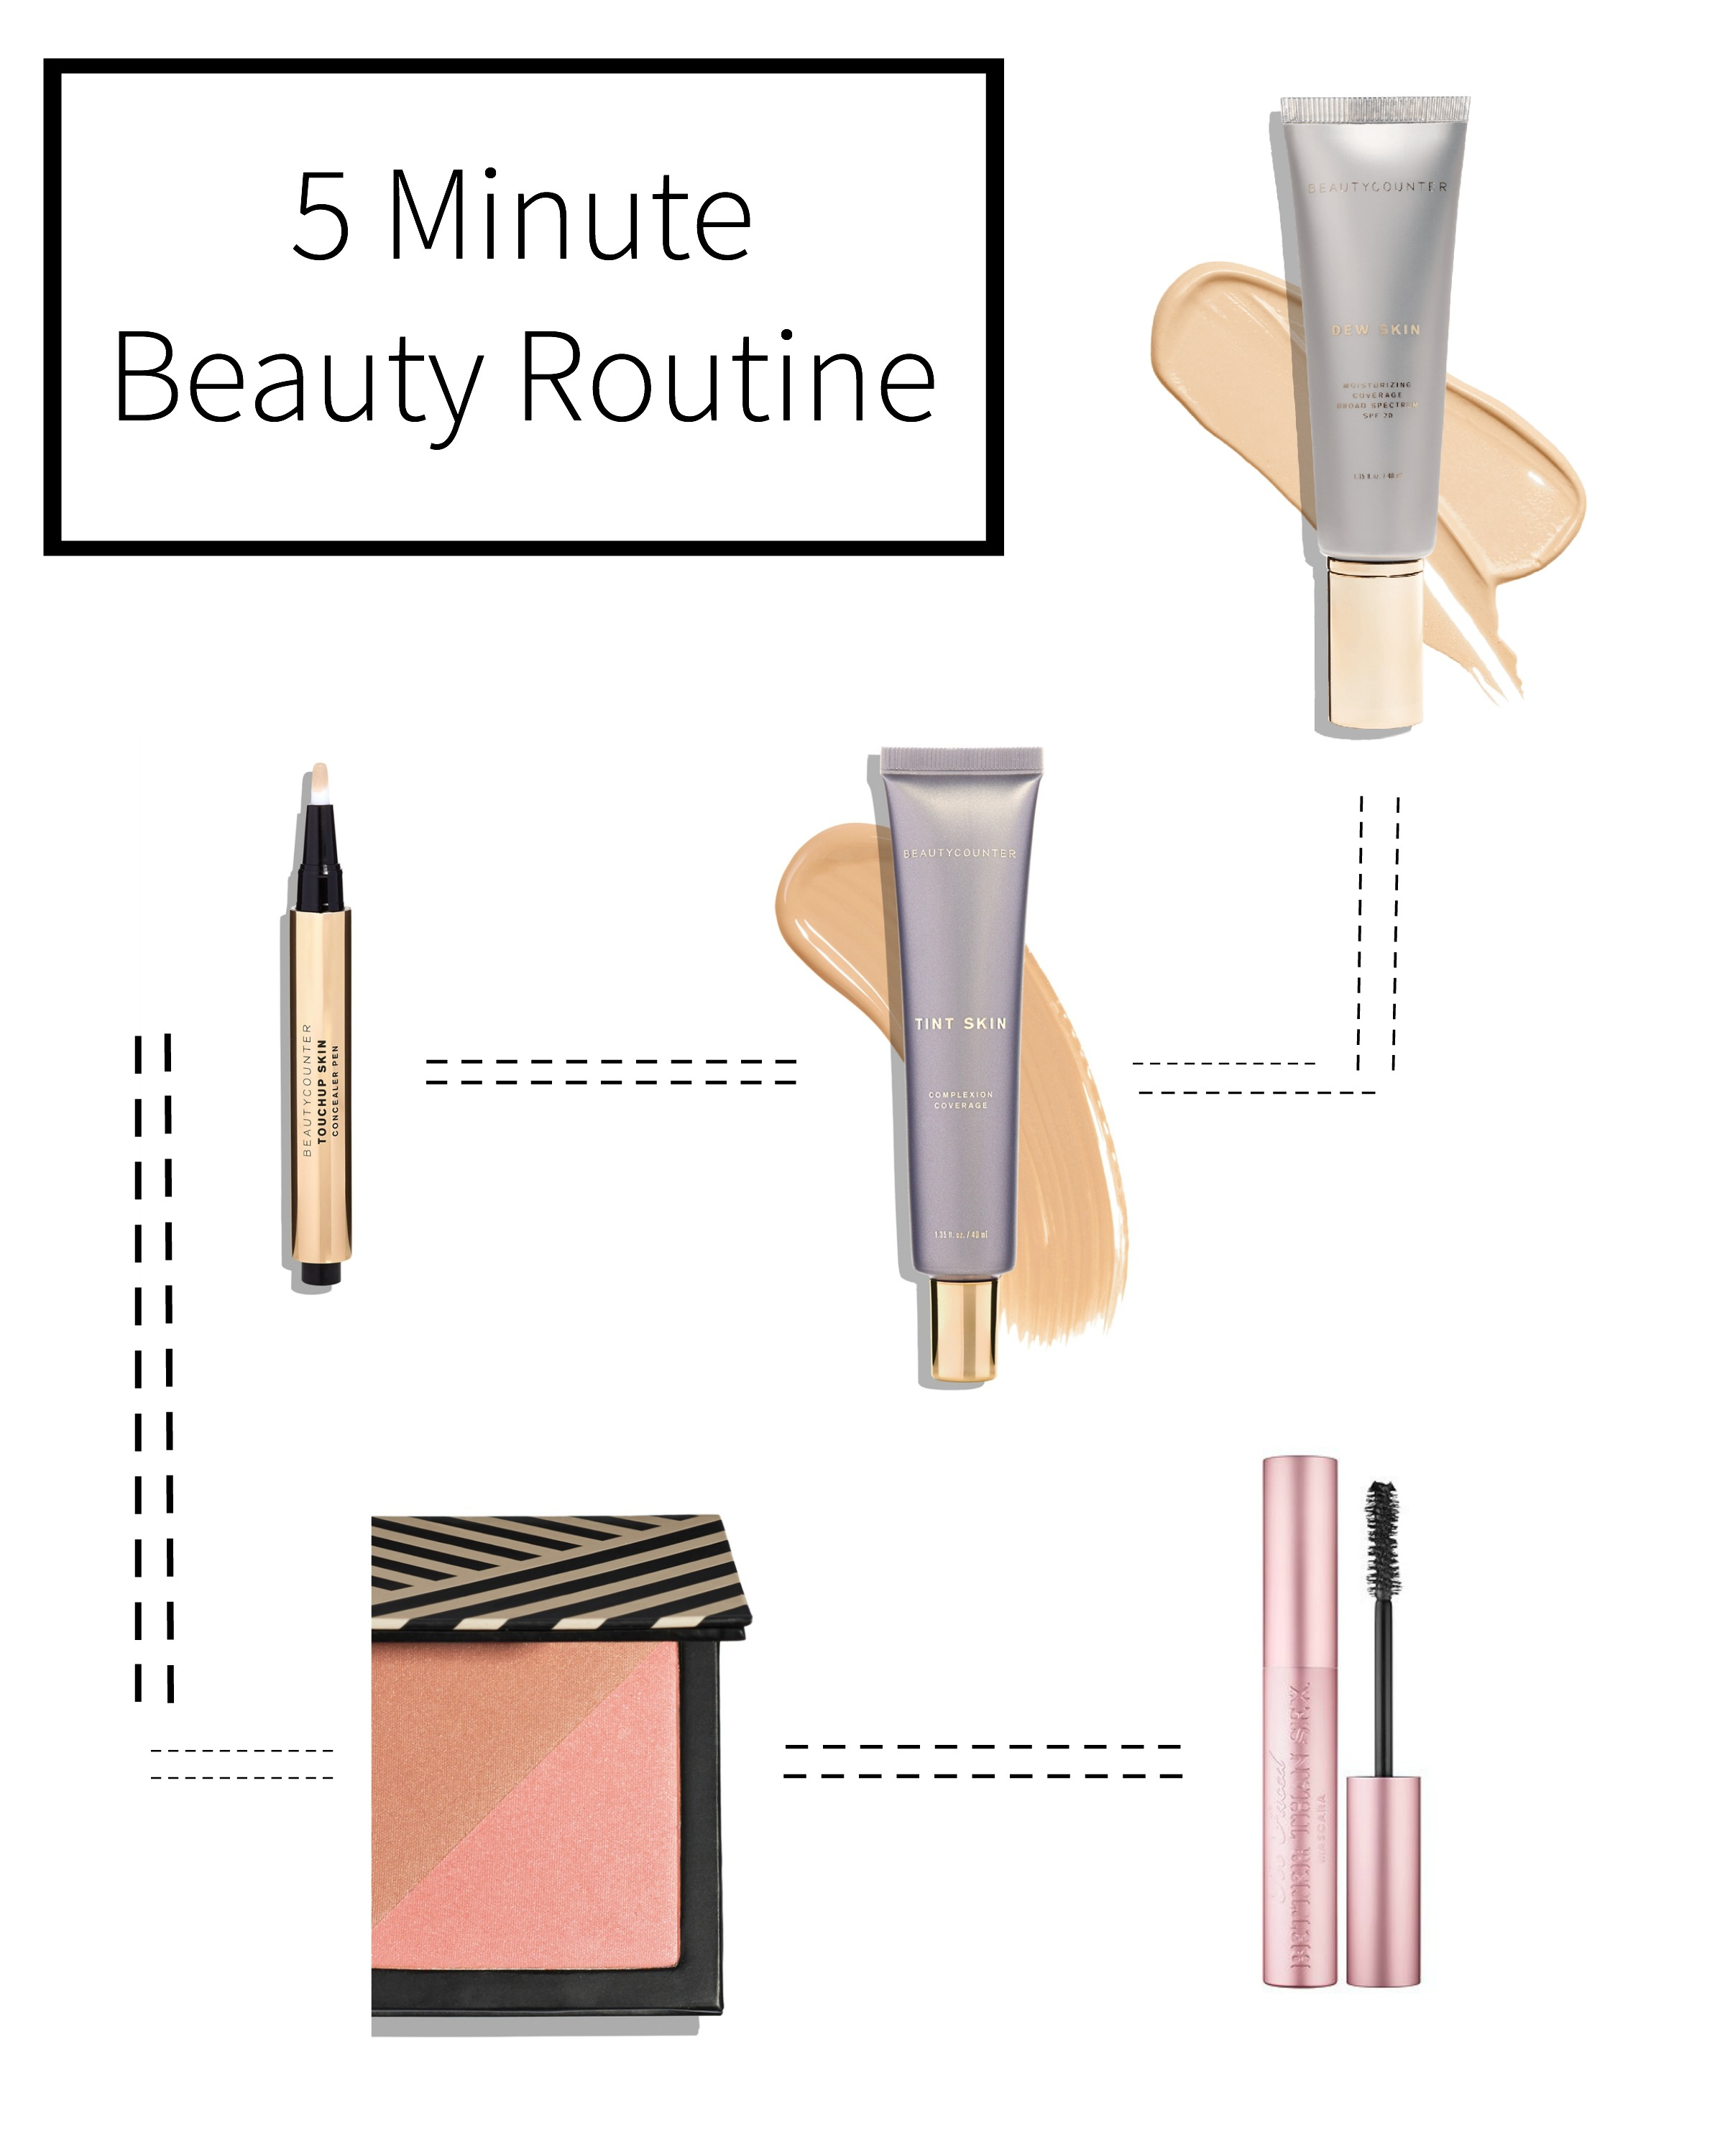 5 Minute Beauty Routine